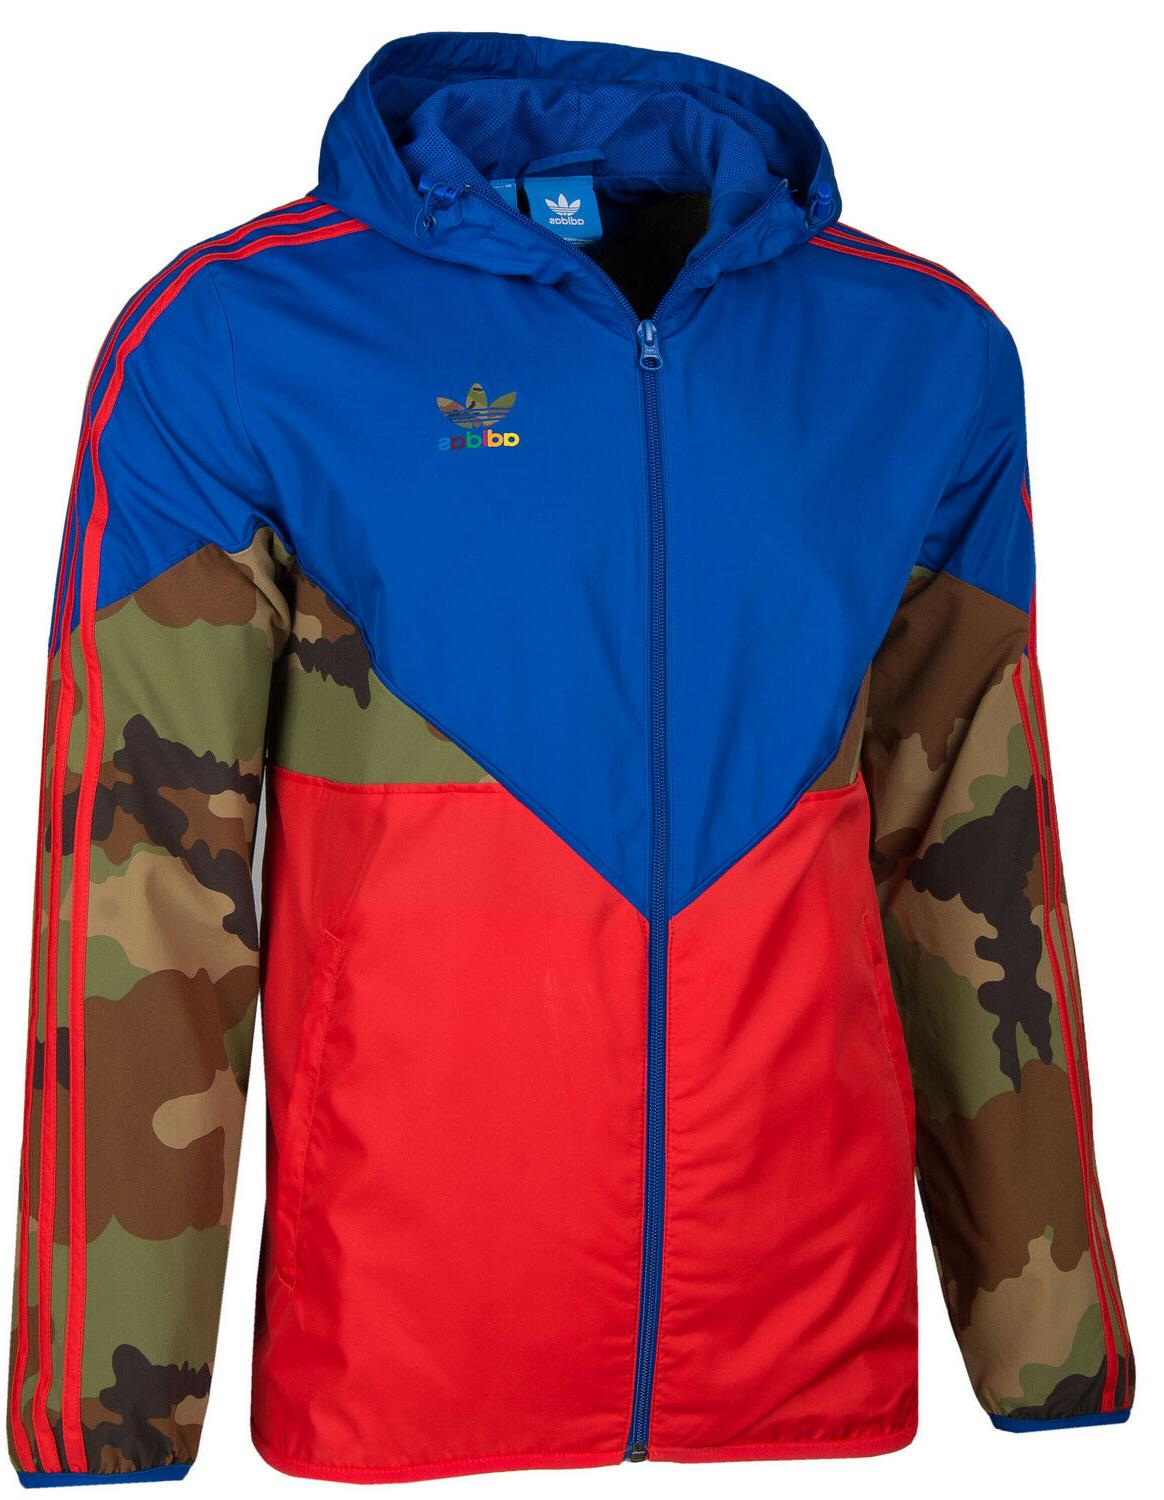 ADIDAS ORIGINALS CAMO MEN'S HOODED WINDBREAKER JACKET HIP-HO